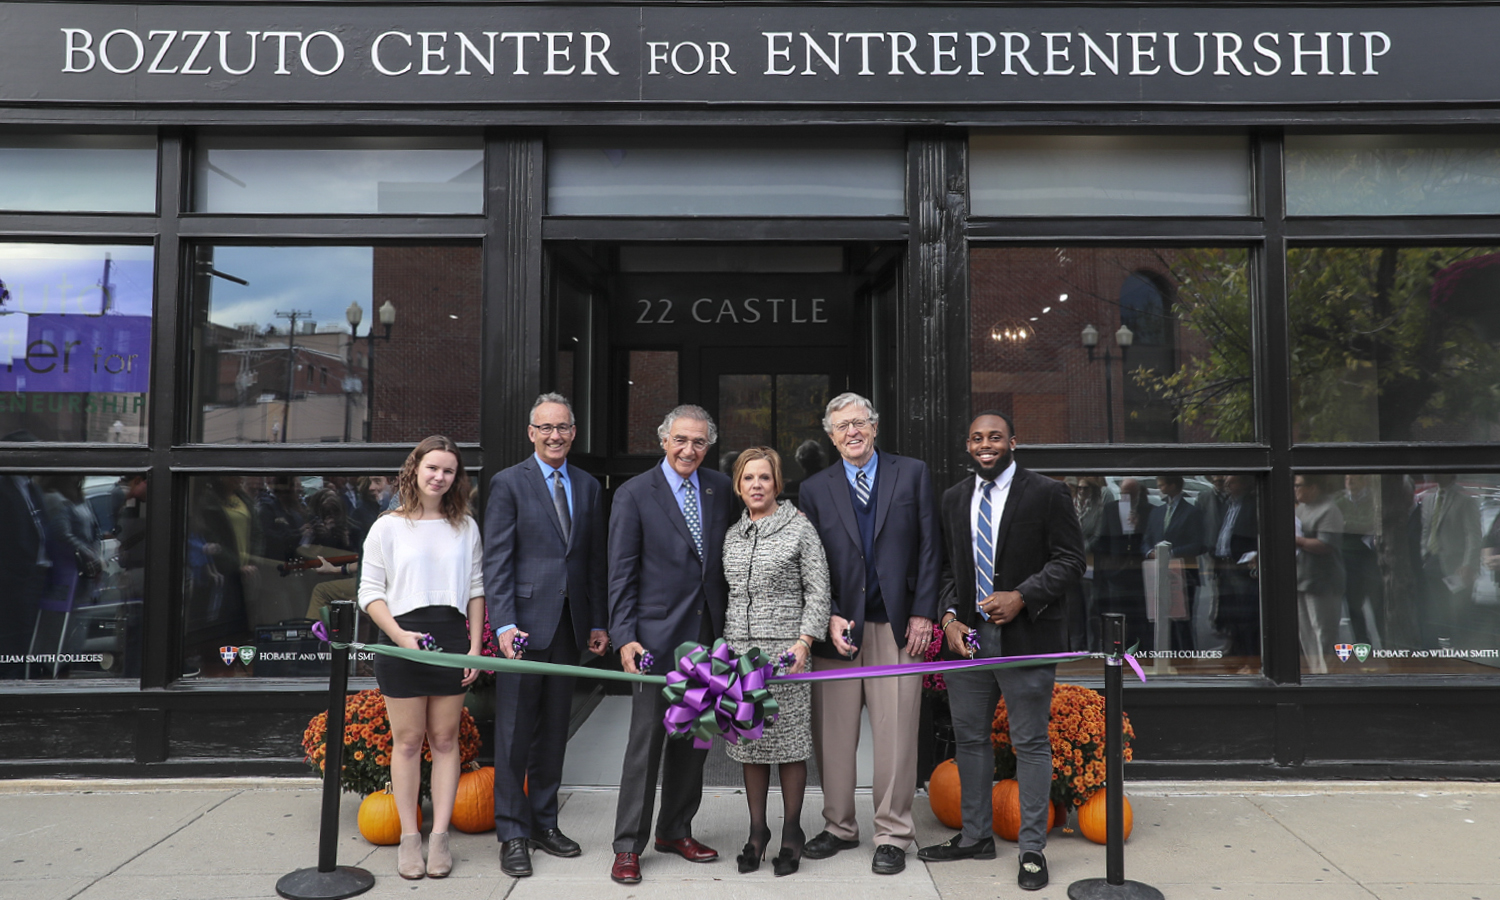 Chloe Elmer '20, Professor of Economics Thomas Drennen, Chair of the Board of Trustees Thomas S. Bozzuto '68 L.H.D. '18, Interim President Patrick A. McGuire L.H.D. '12and Al Smith '19​ pose for a photo during the ribbon cutting ceremony as part of the dedication of the new Bozzuto Center for Entrepreneurship​ in downtown Geneva, N.Y.